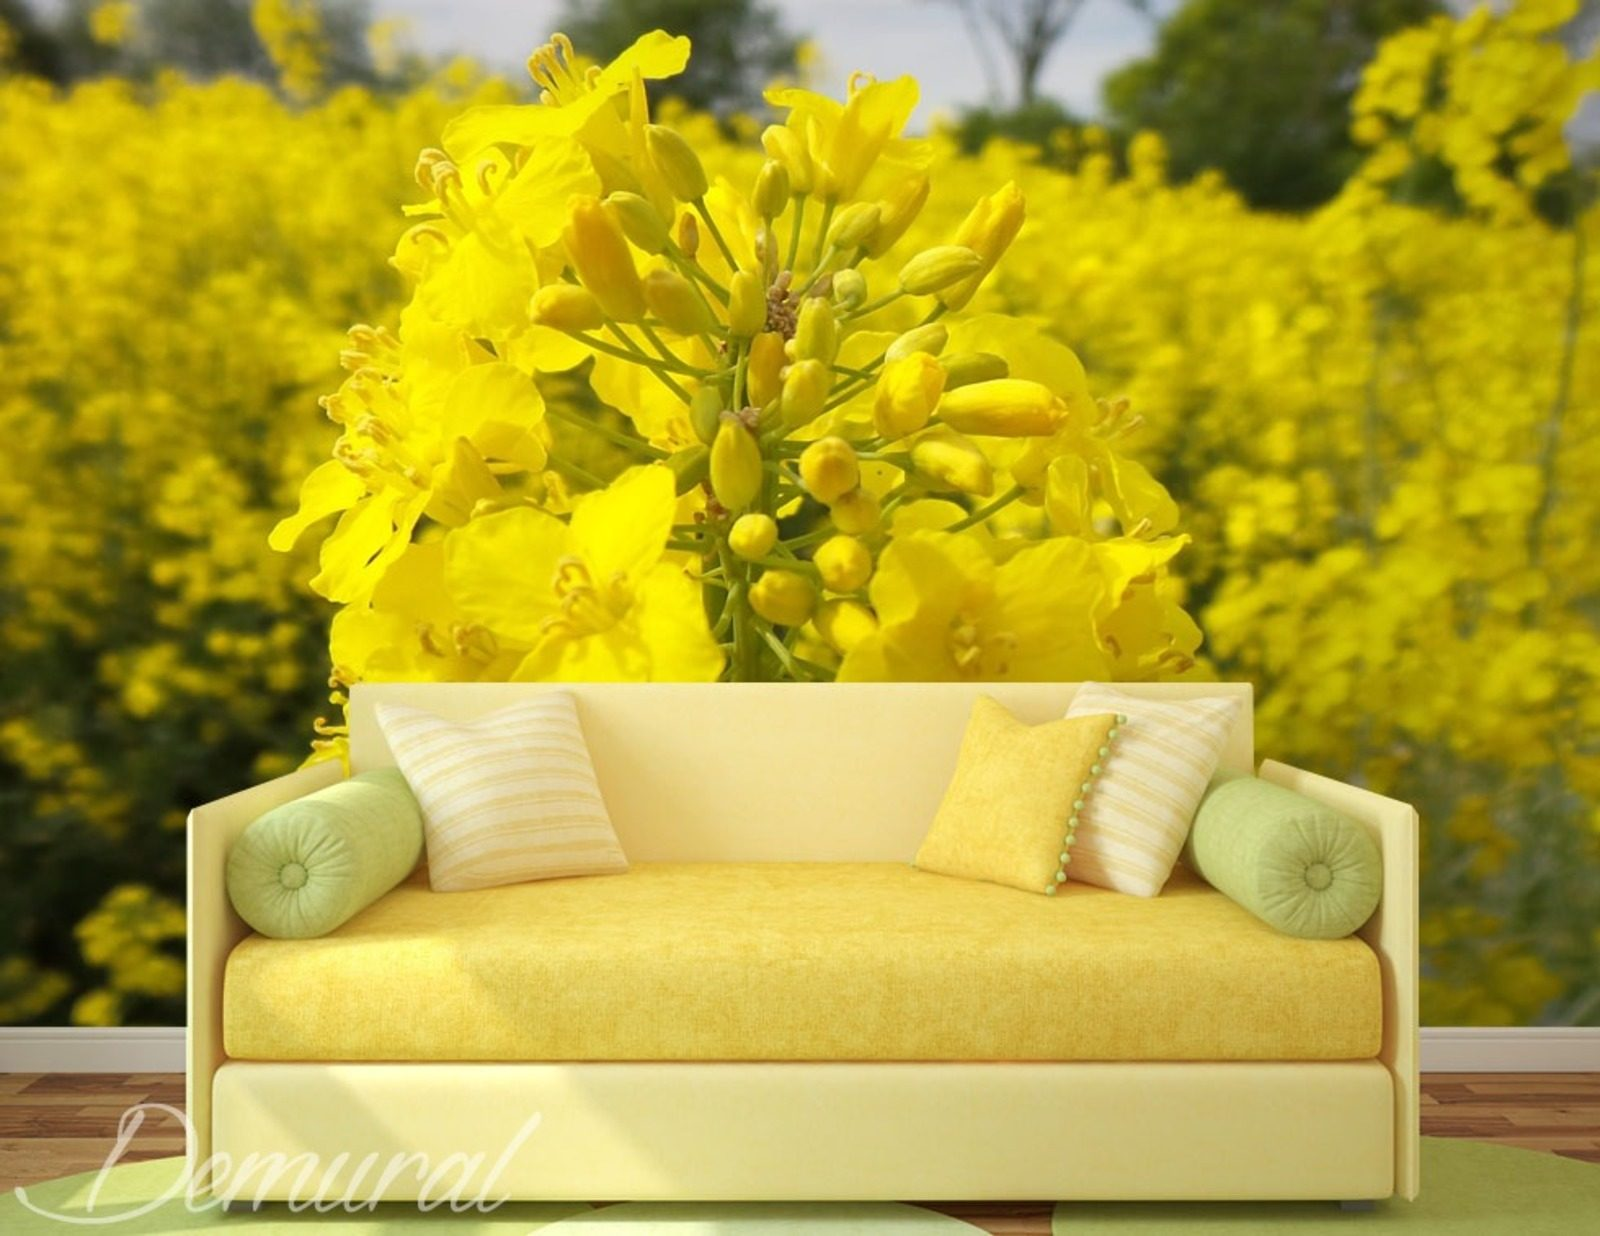 Rapeseed field flowers wallpaper mural photo - Flower wallpaper mural ...